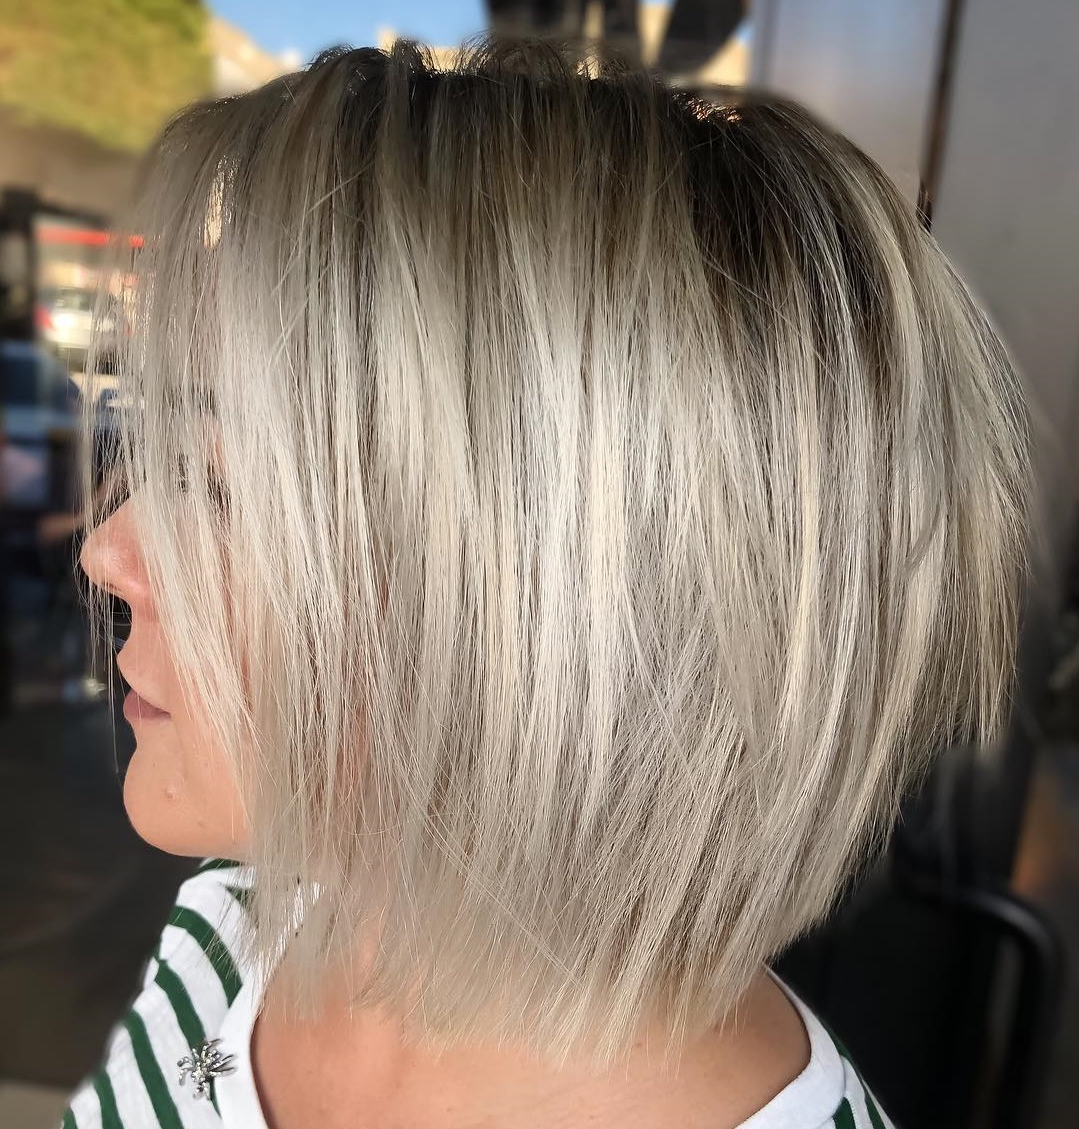 Fashionable Razored Gray Bob Hairstyles With Bangs Within 40 Awesome Ideas For Layered Bob Hairstyles You Can't Miss (Gallery 11 of 20)